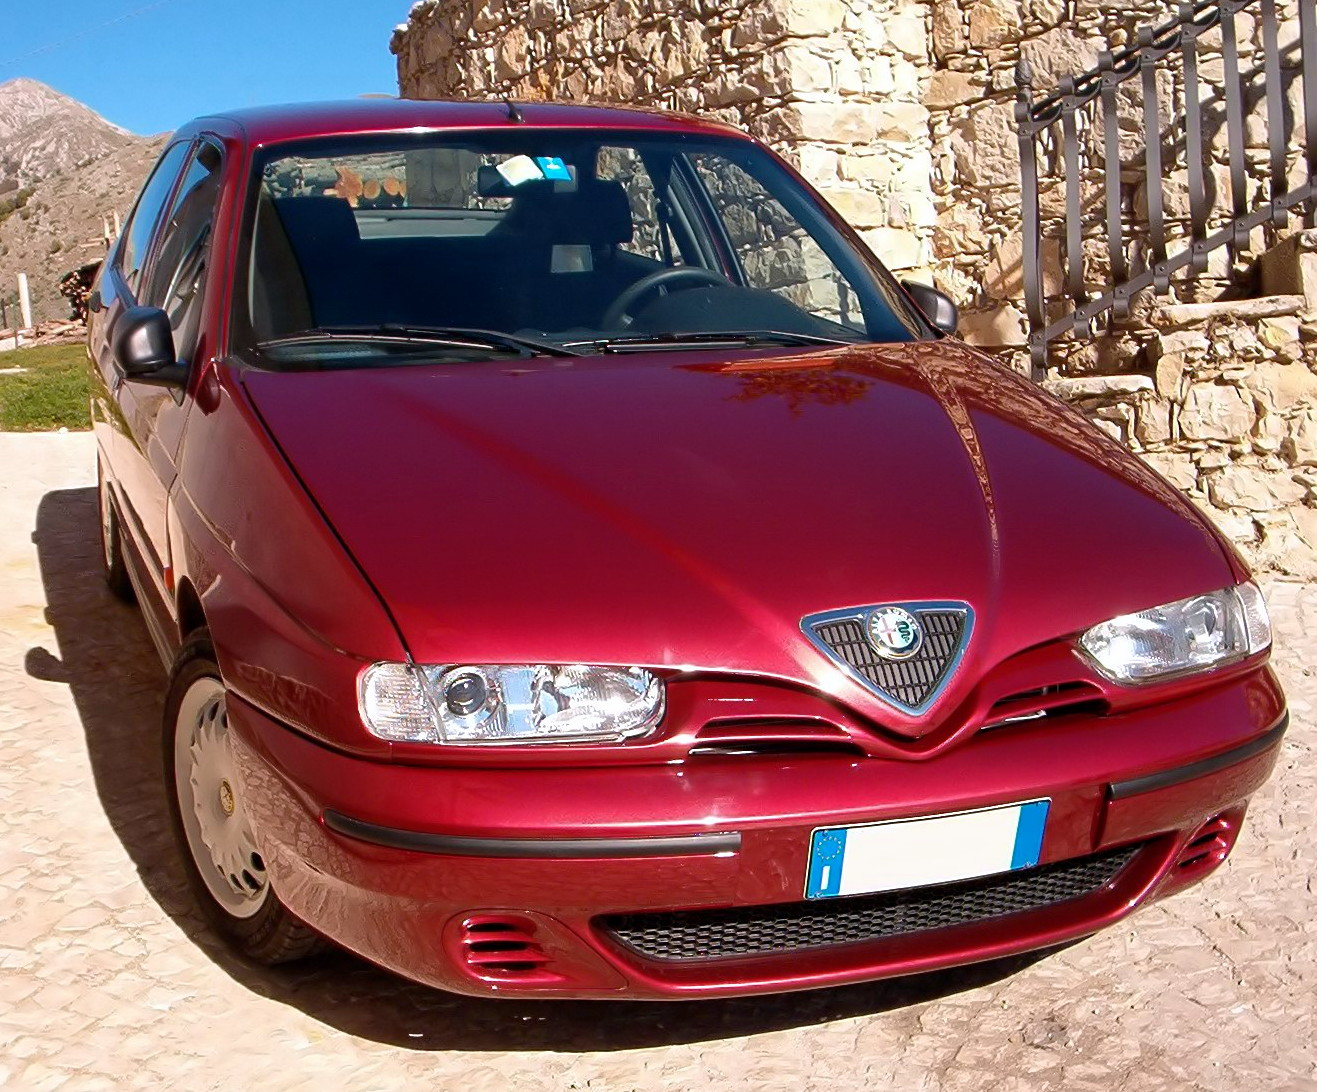 Alfa romeo 146 photo - 1